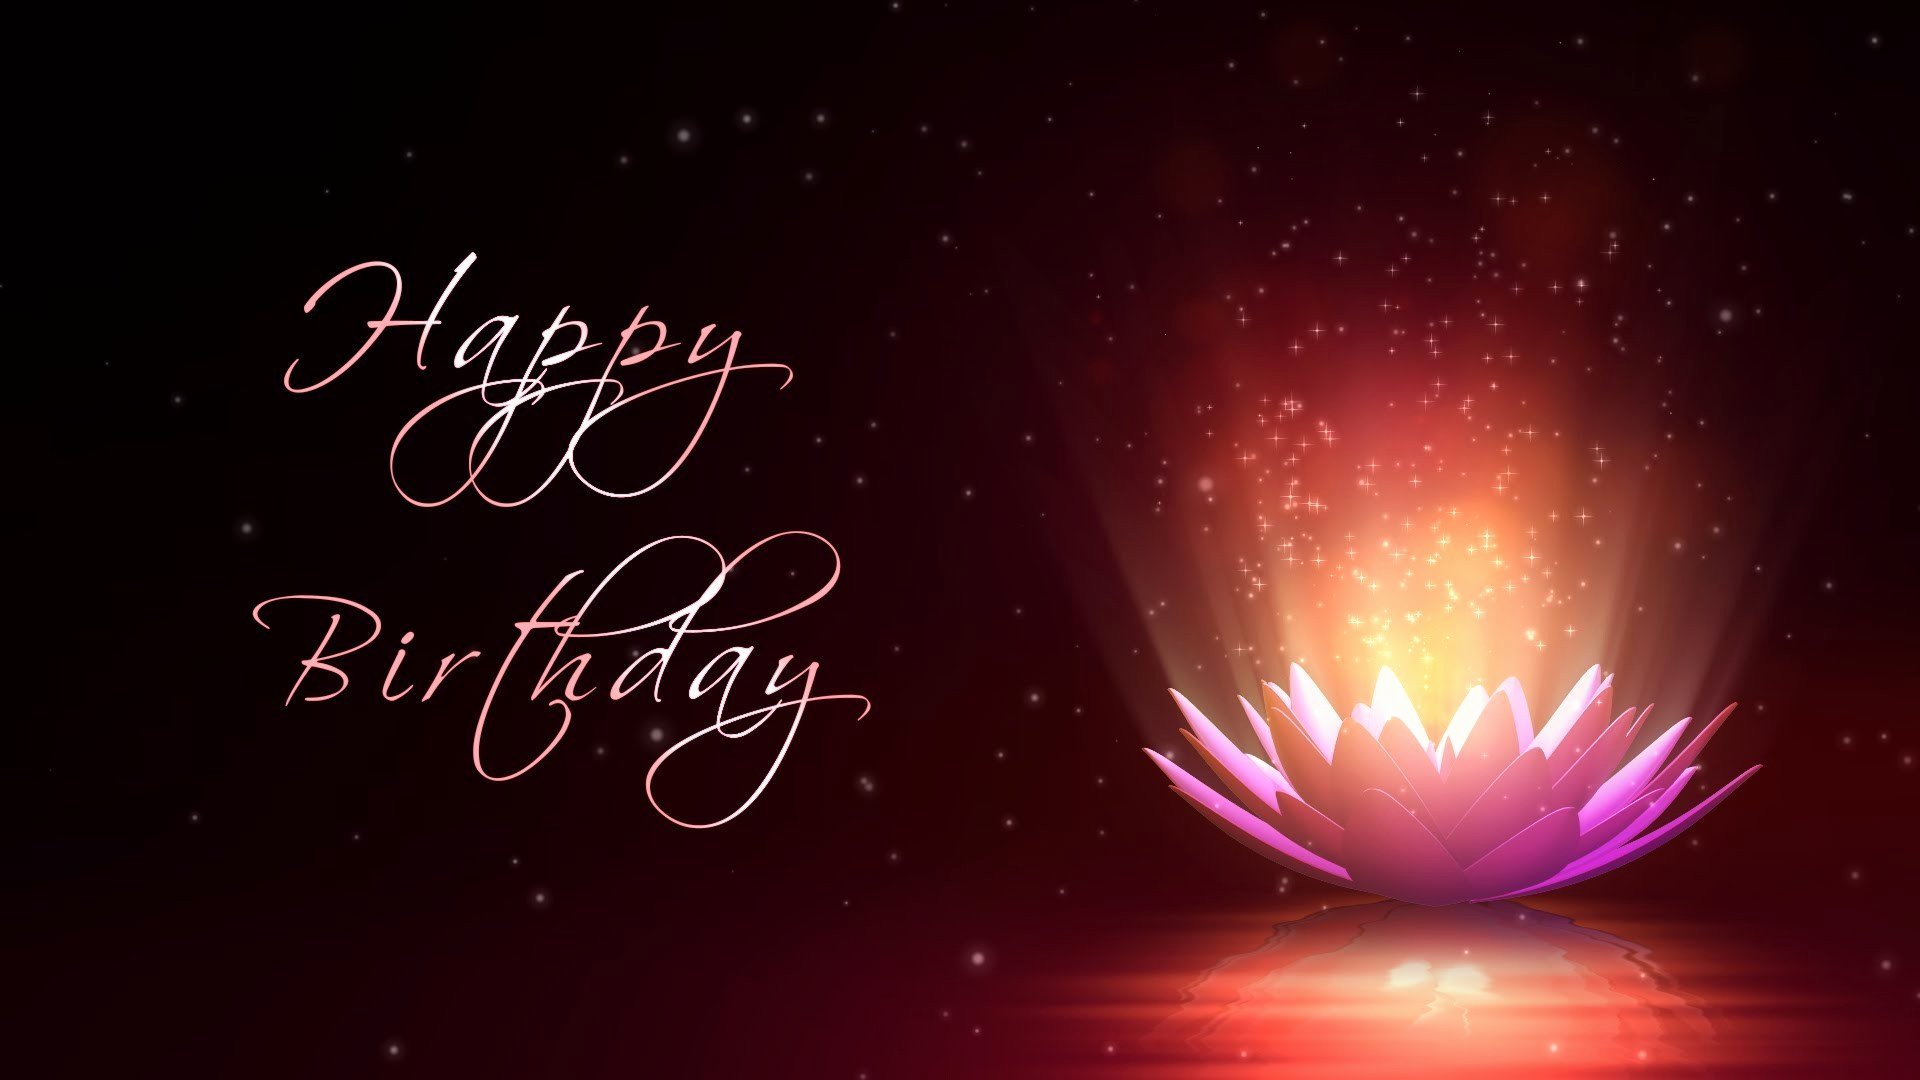 Happy Bday Wallpapers Free Unique Happy Birthday Background ·① Download Free Stunning